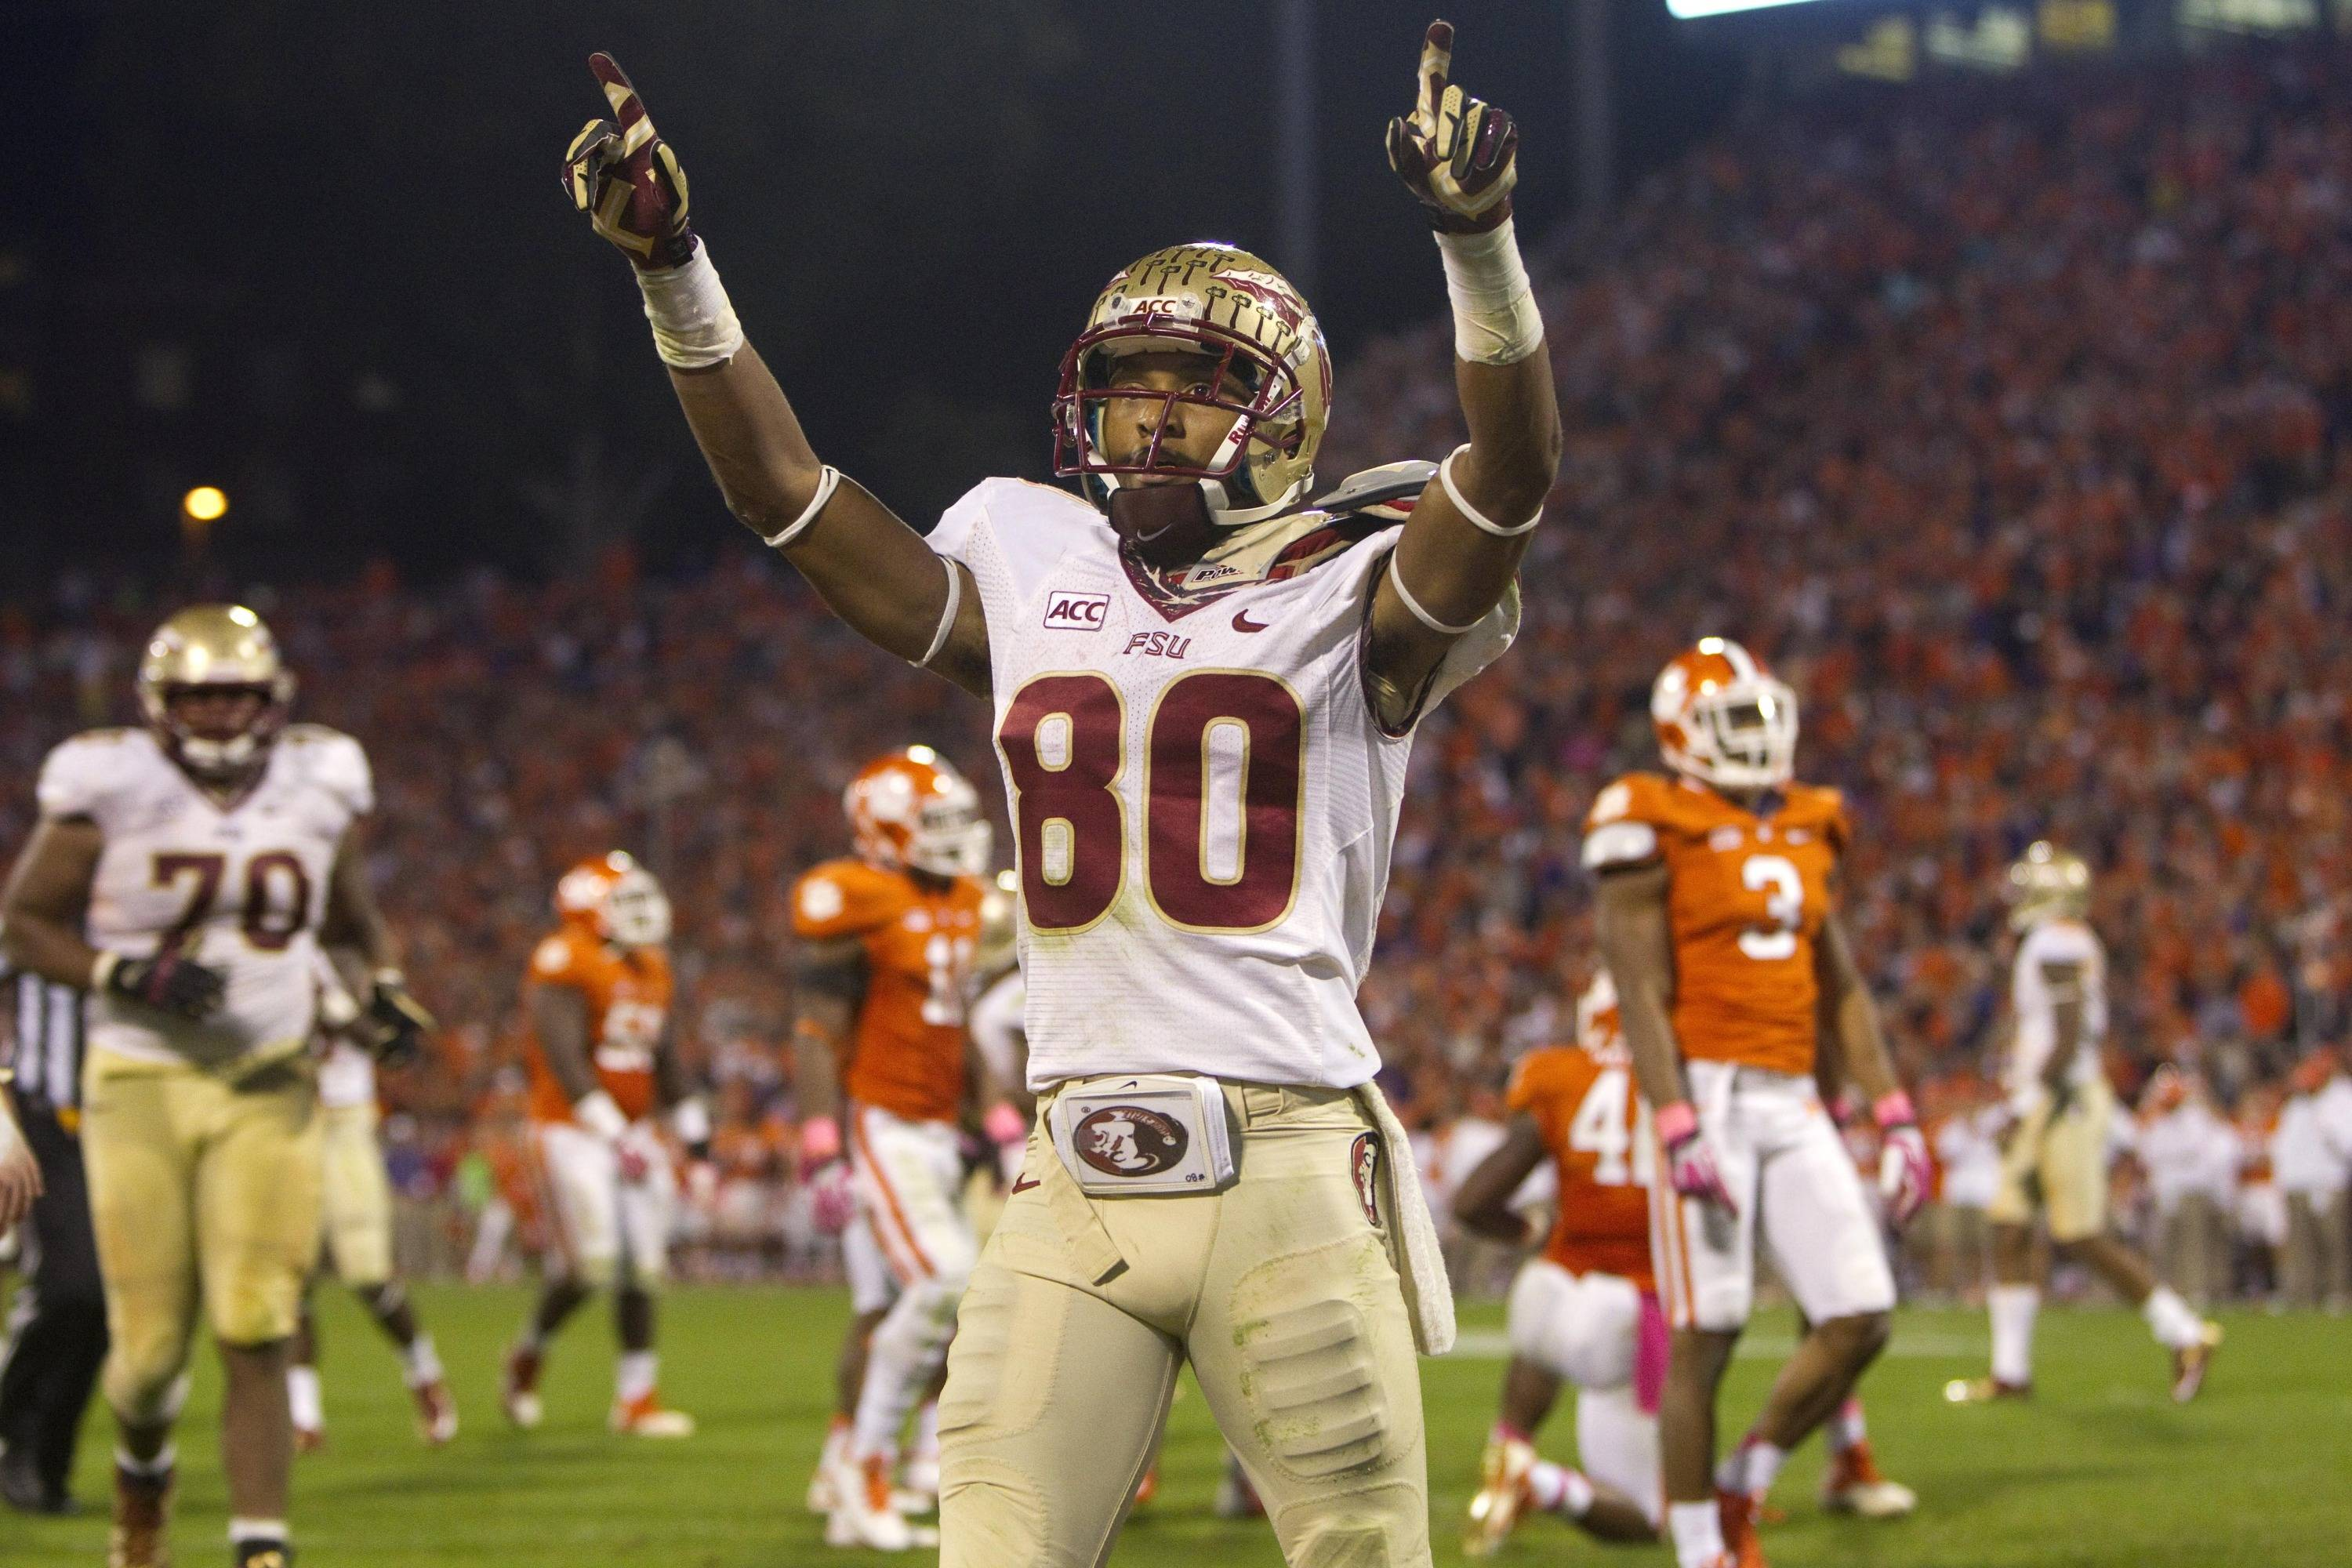 Rashad Greene (80) celebrates after scoring a touchdown. (Joshua S. Kelly-USA TODAY Sports)